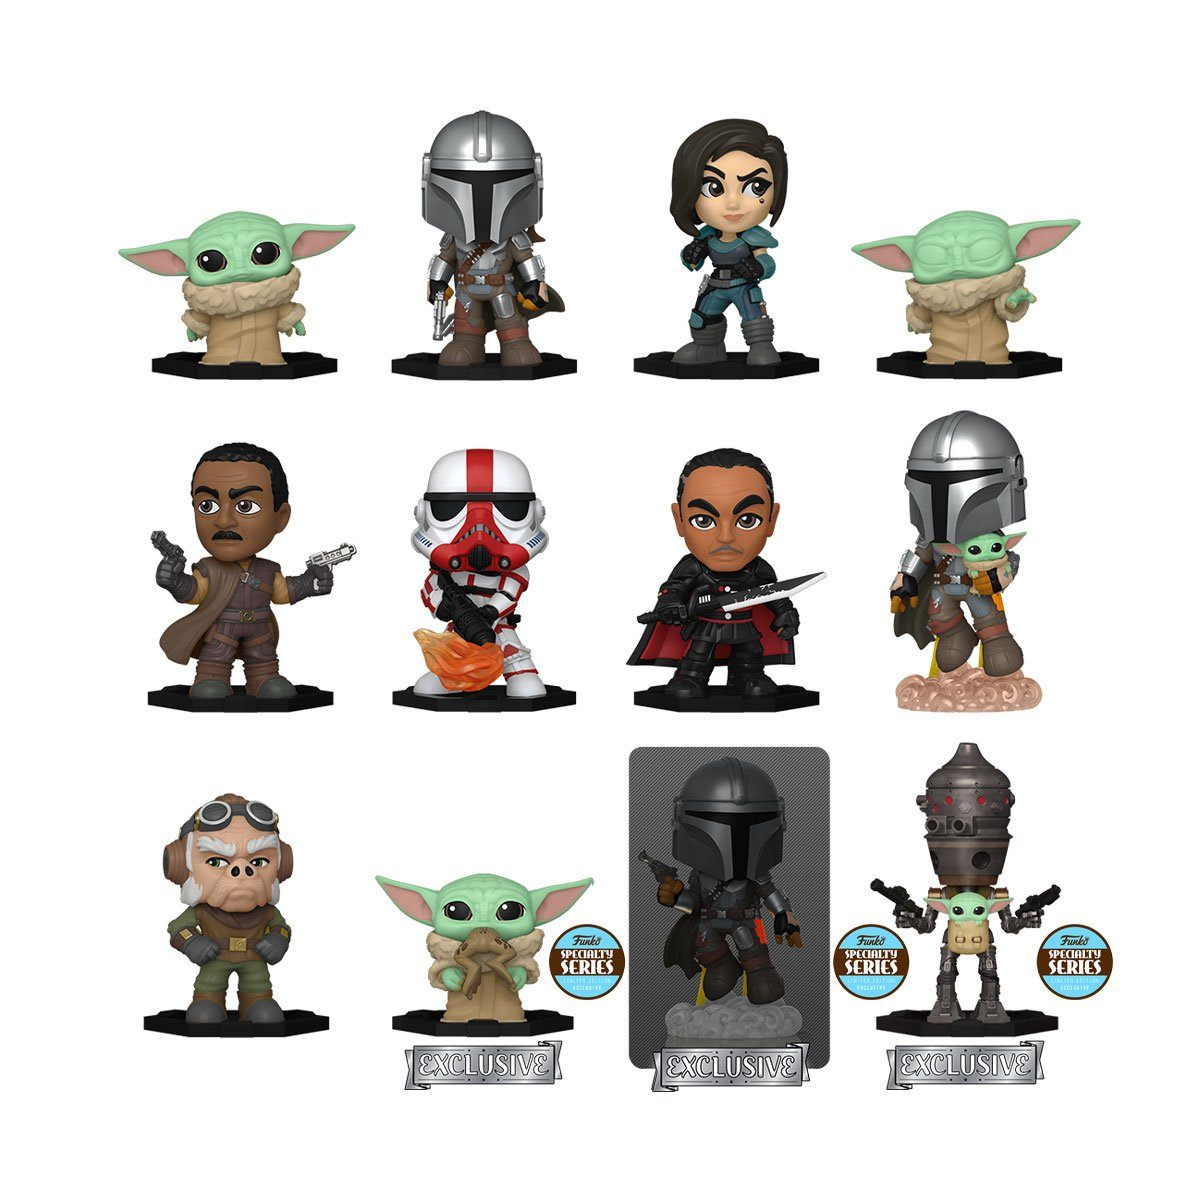 The Mandalorian Mystery Minis by Funko - Specialty Series Exclusive! [PRE-ORDER FOR FEB 2021* DELIVERY] Blind Box Funko